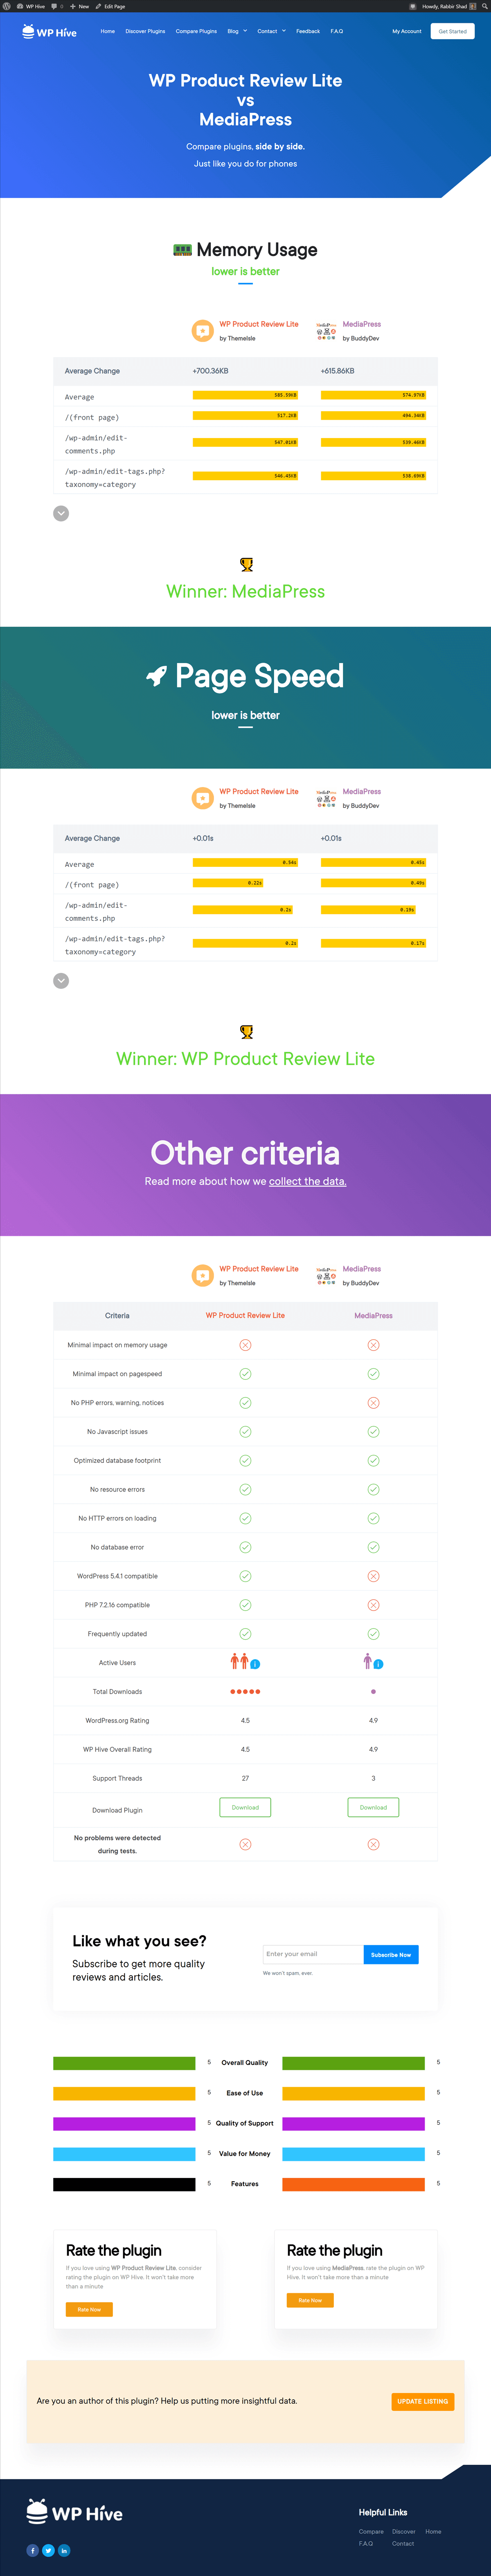 MemberPress vs WP Product Review Lite